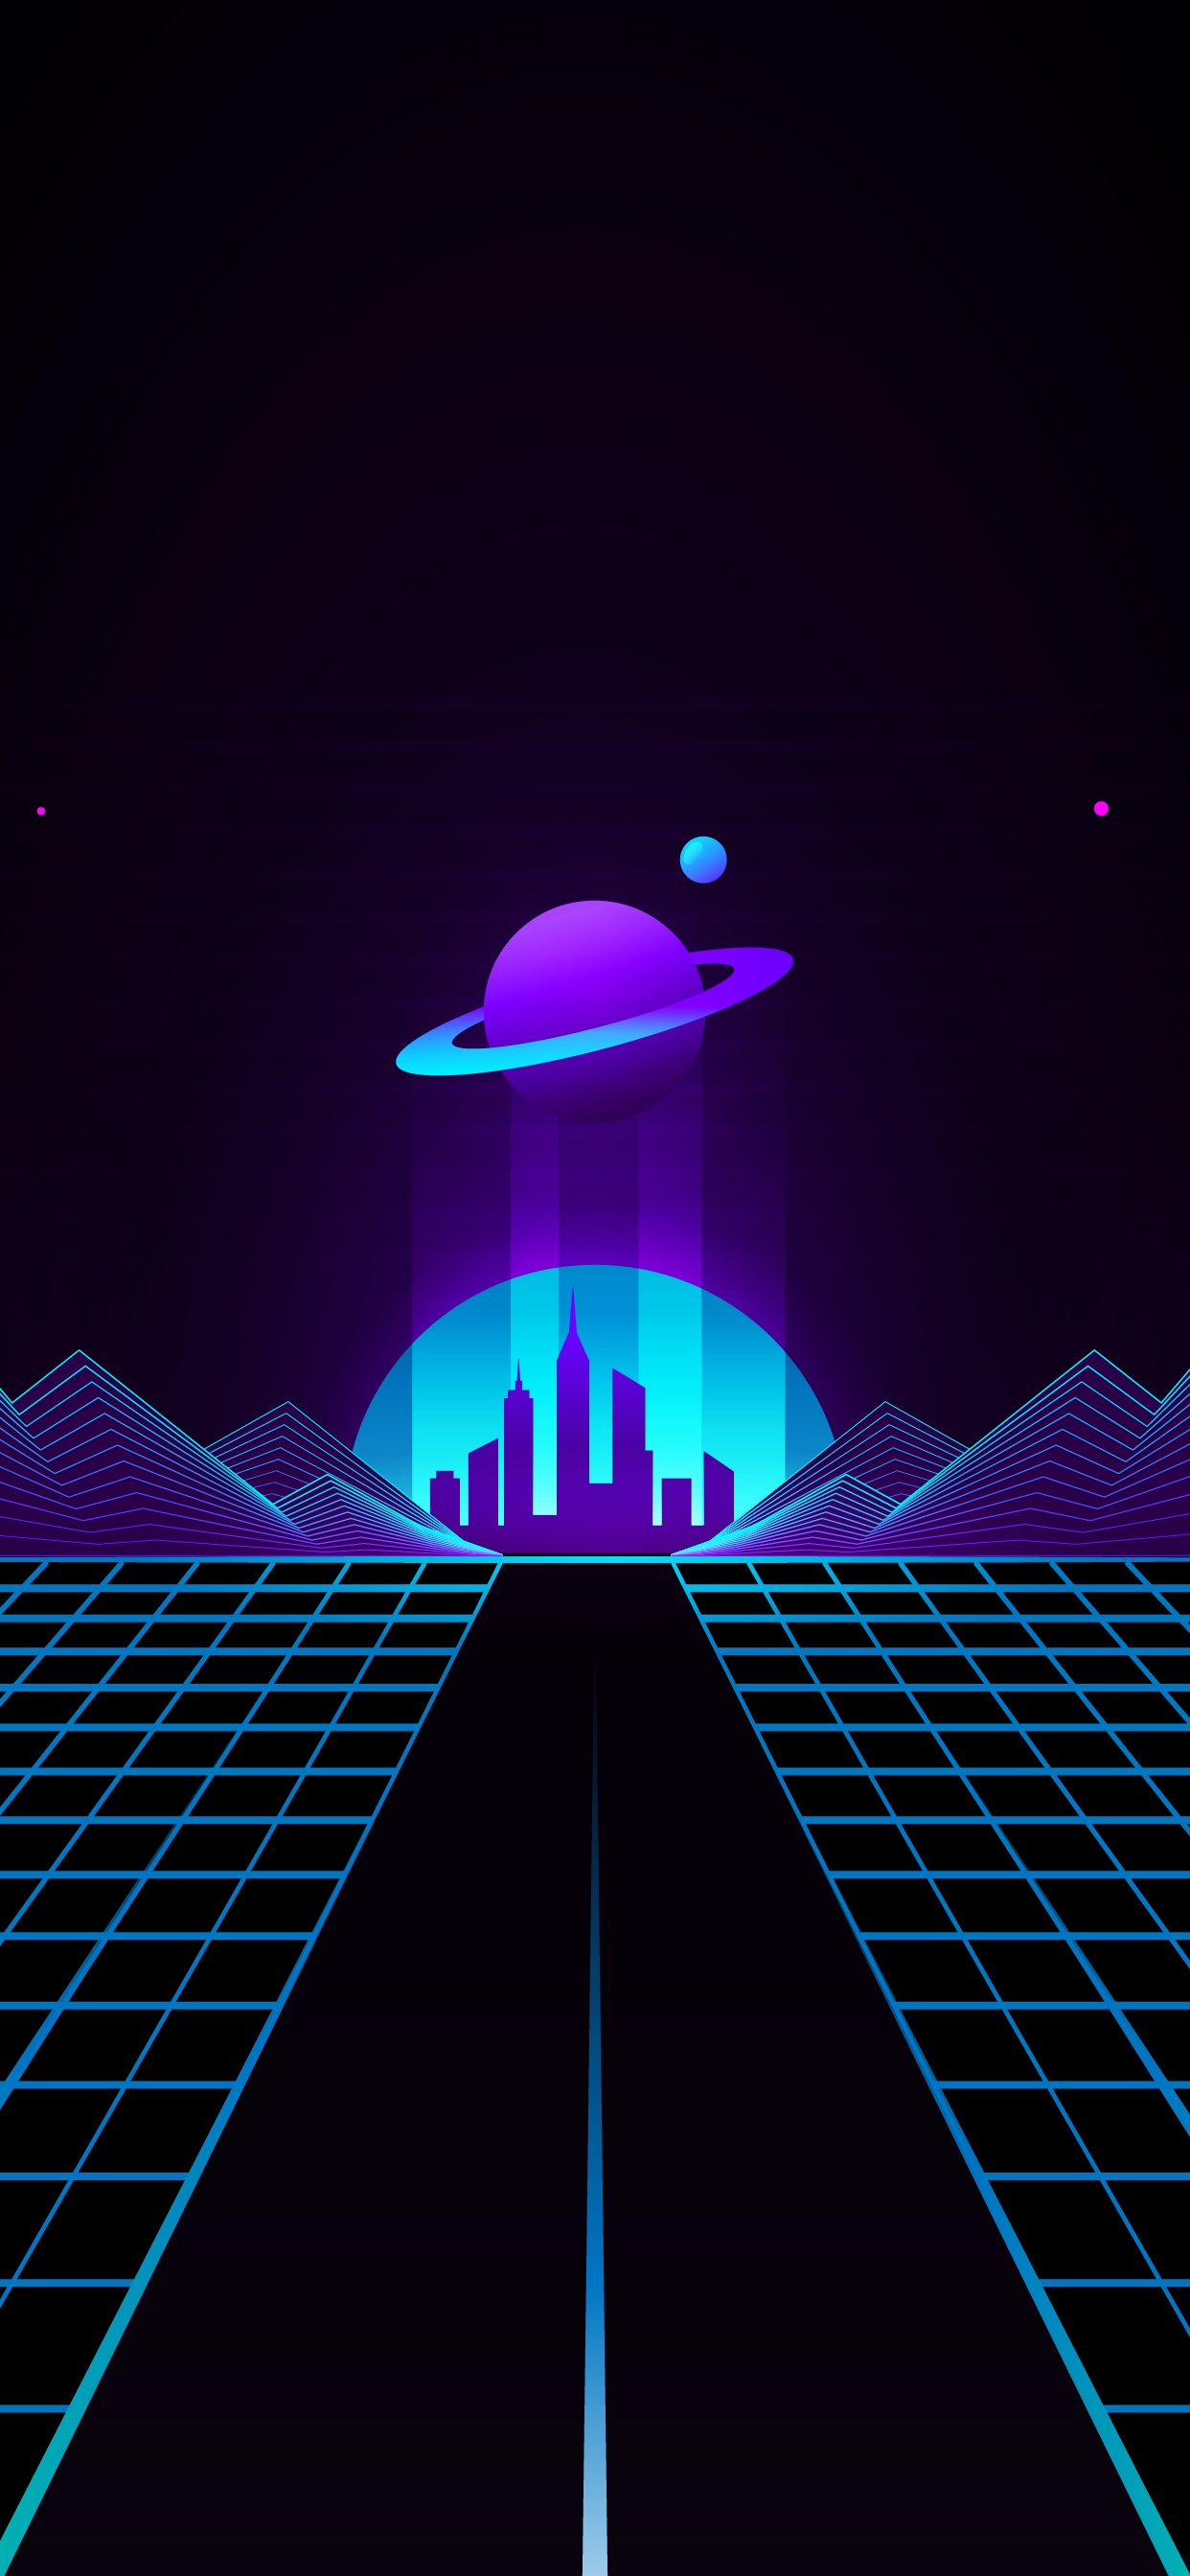 Saturn outrun wallpaper hd night for mobile phone